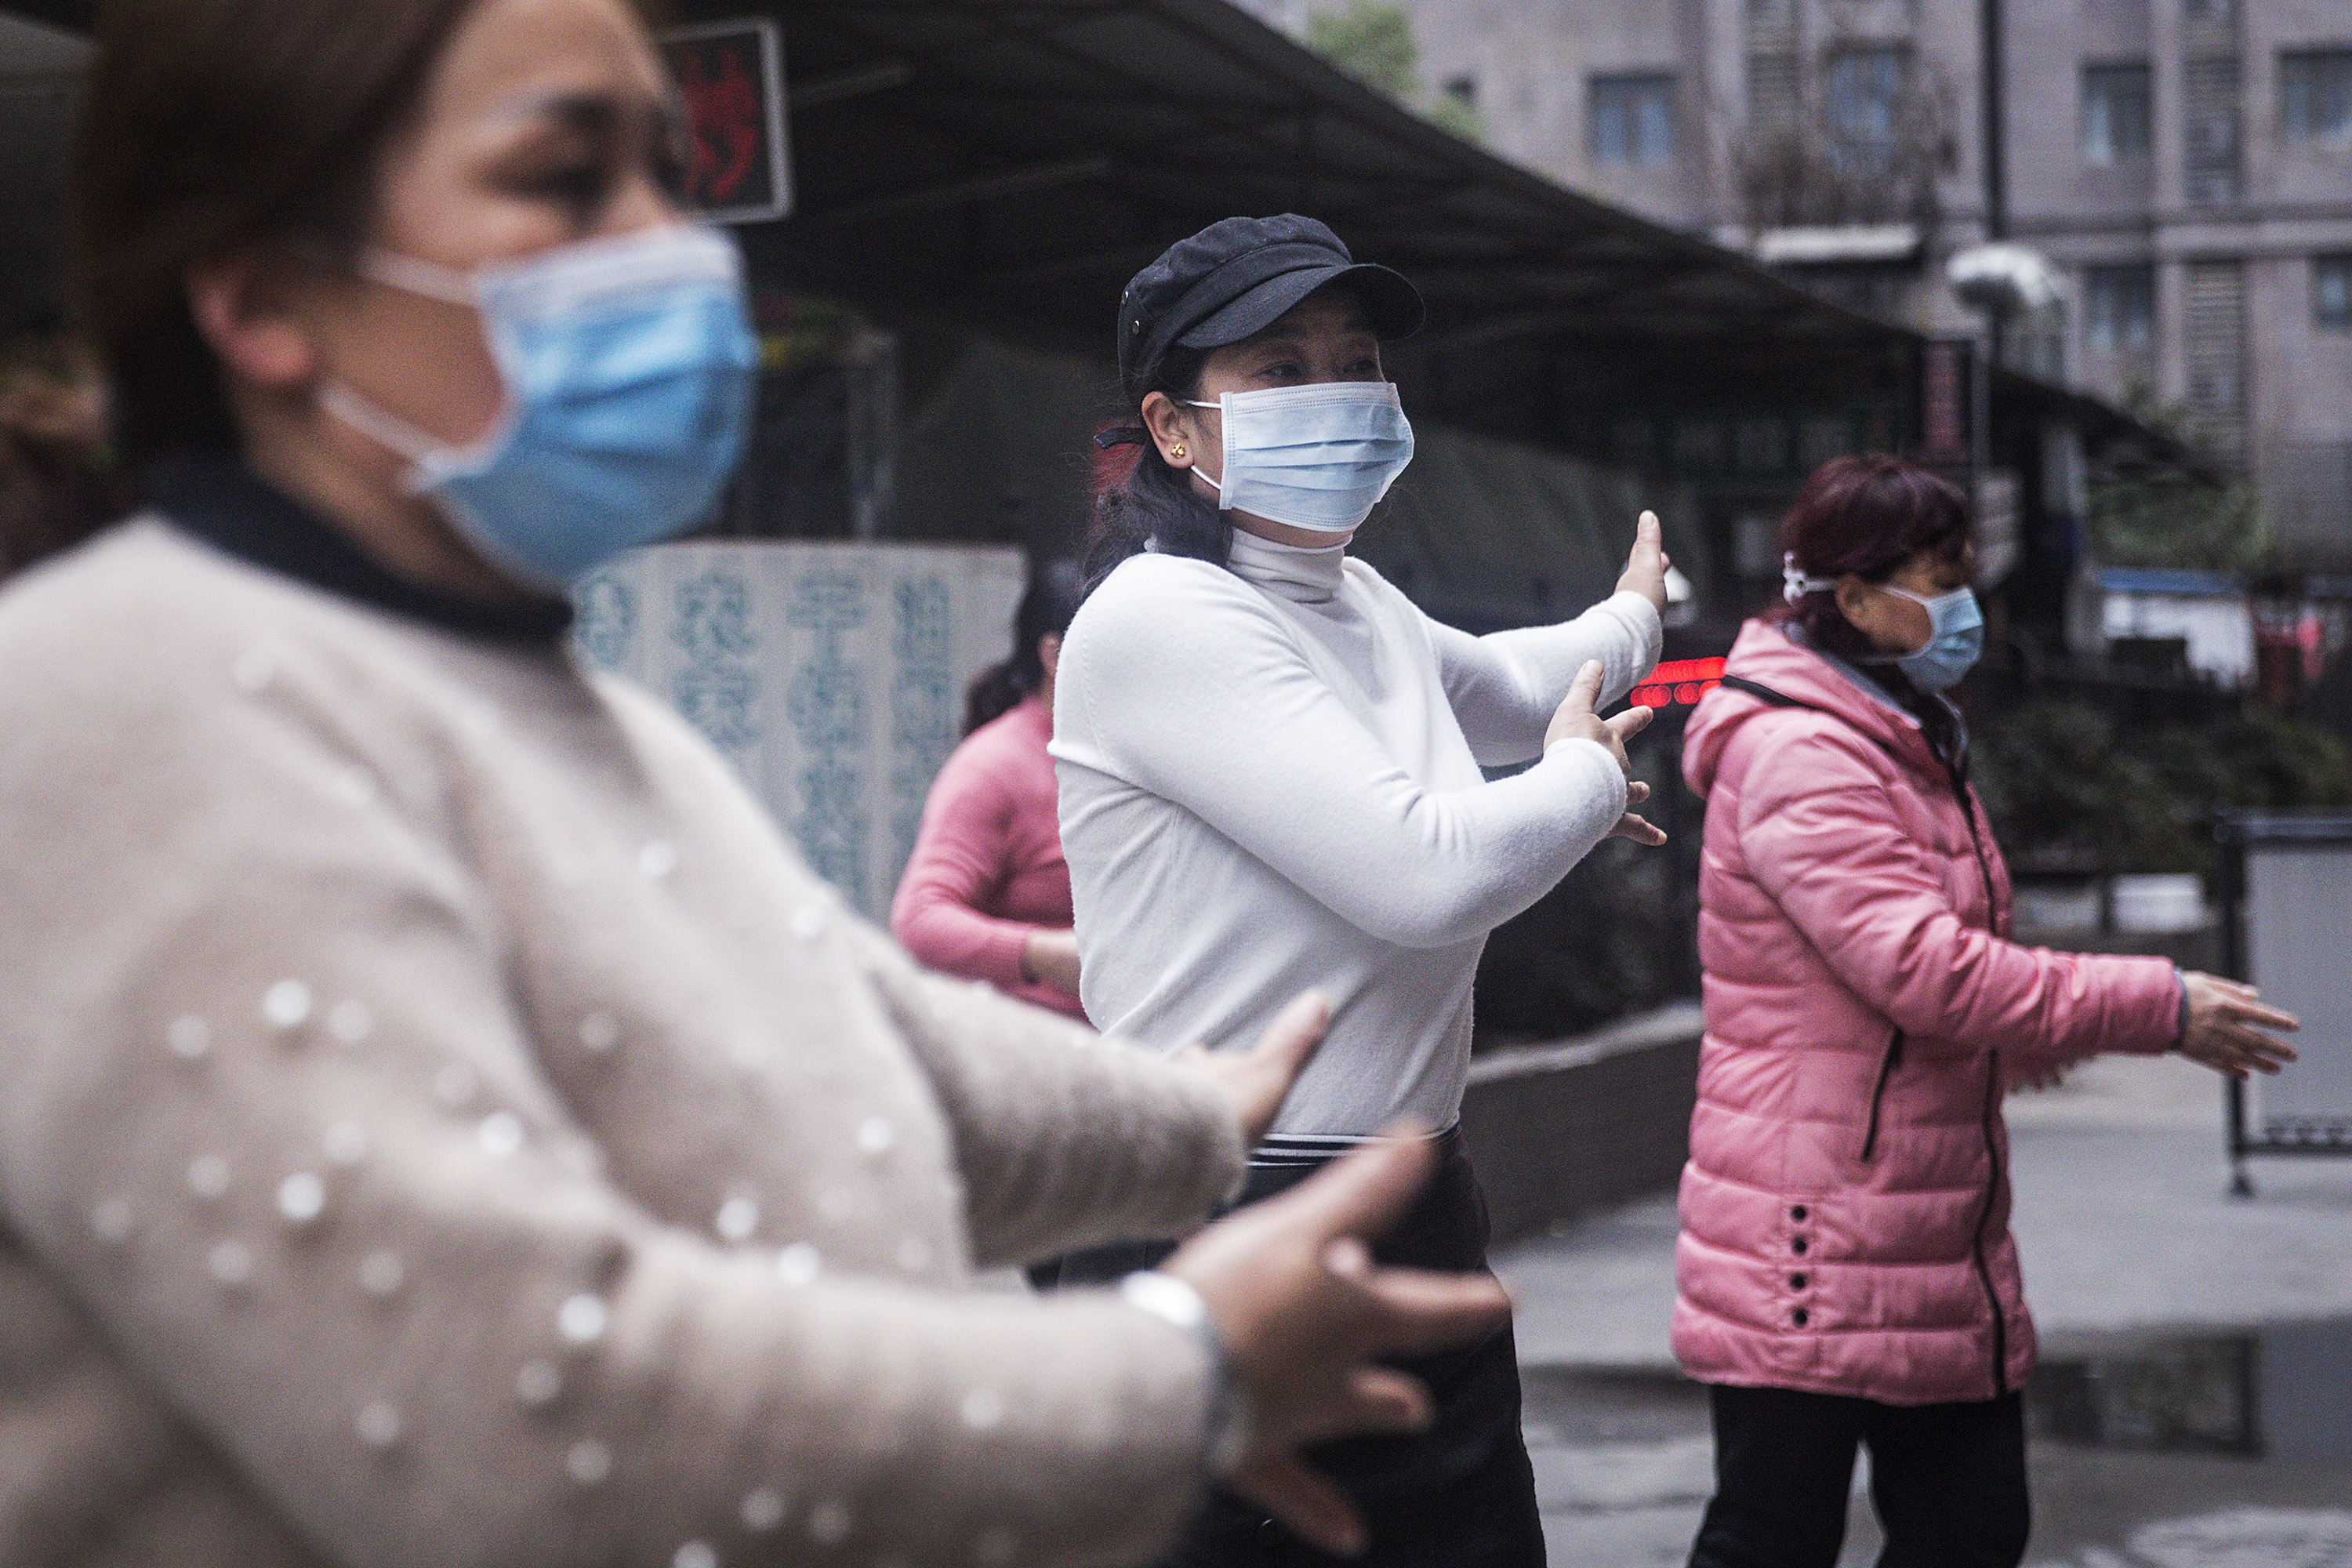 A group of women wear masks while exercising on January 27, 2020 in Wuhan, China.